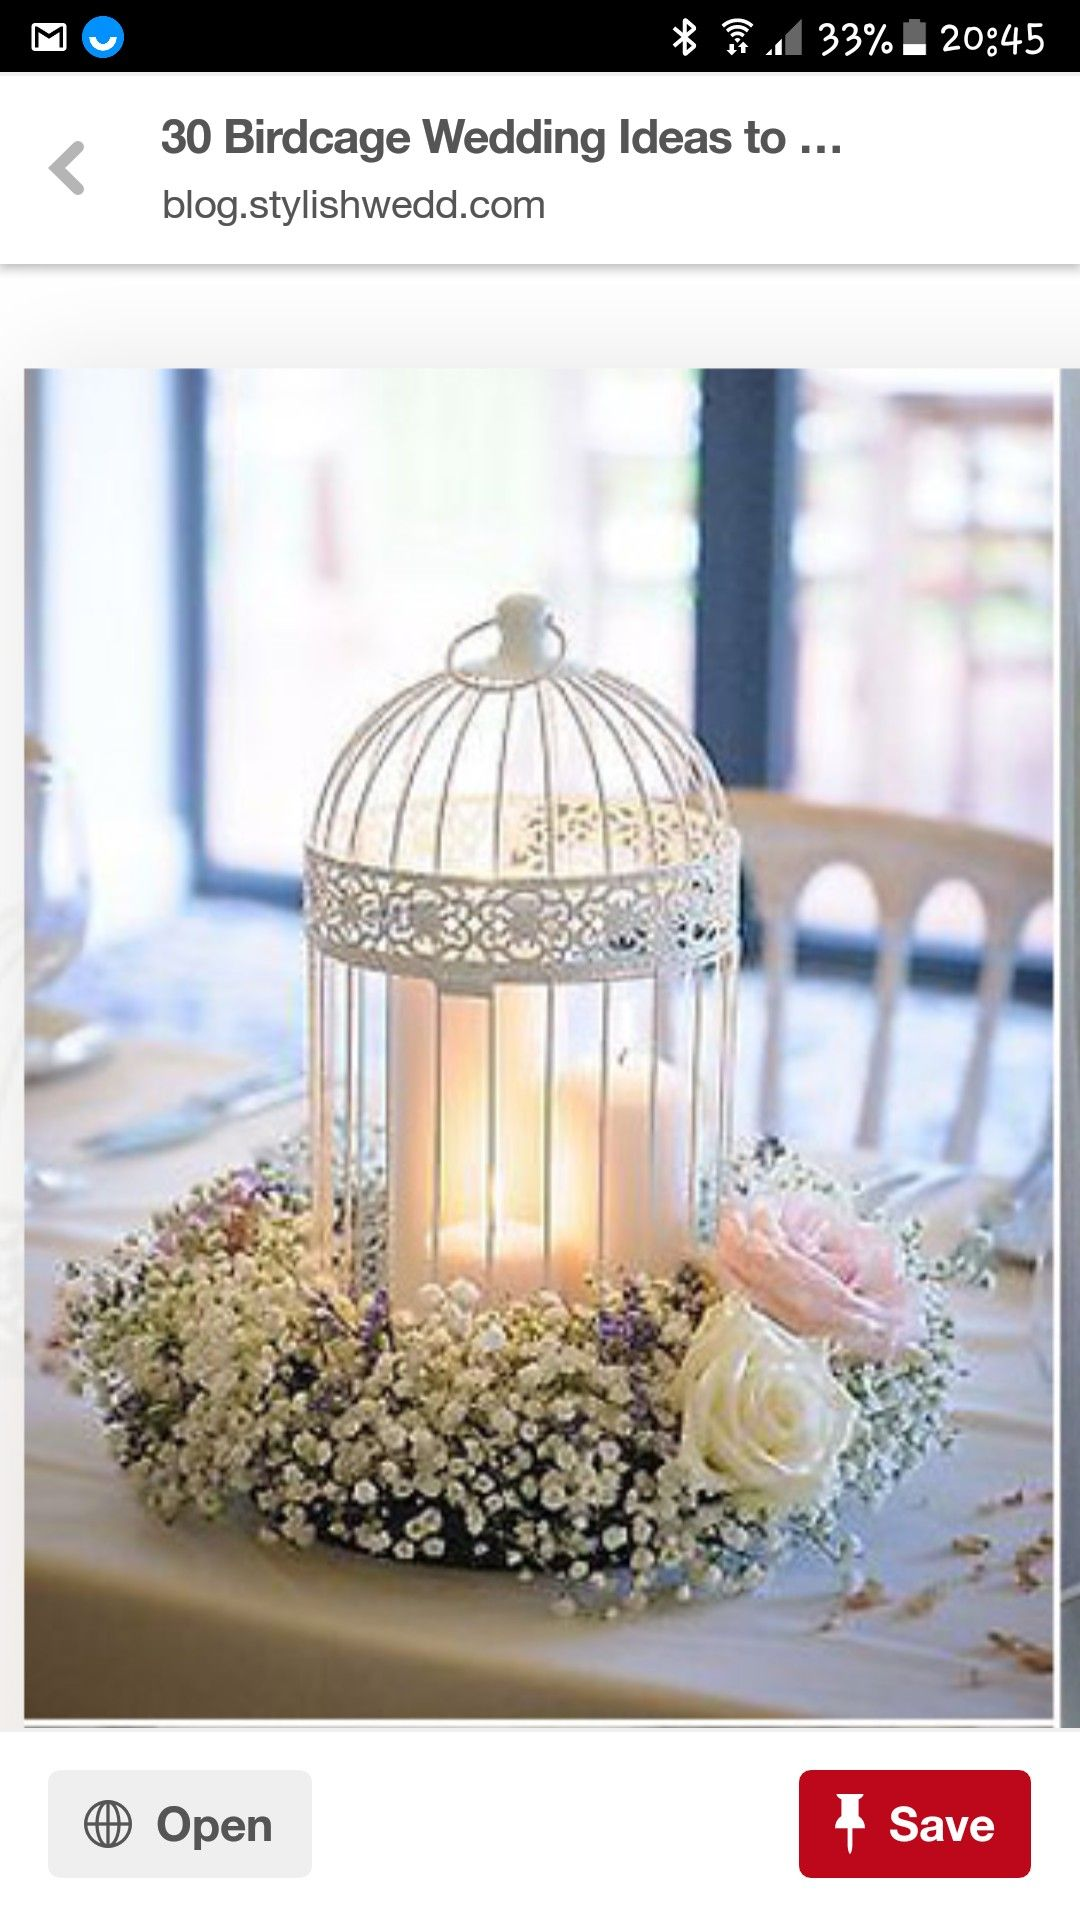 Pin by Amy Tang on birdcage inspired vintage wedding centerpiece ...